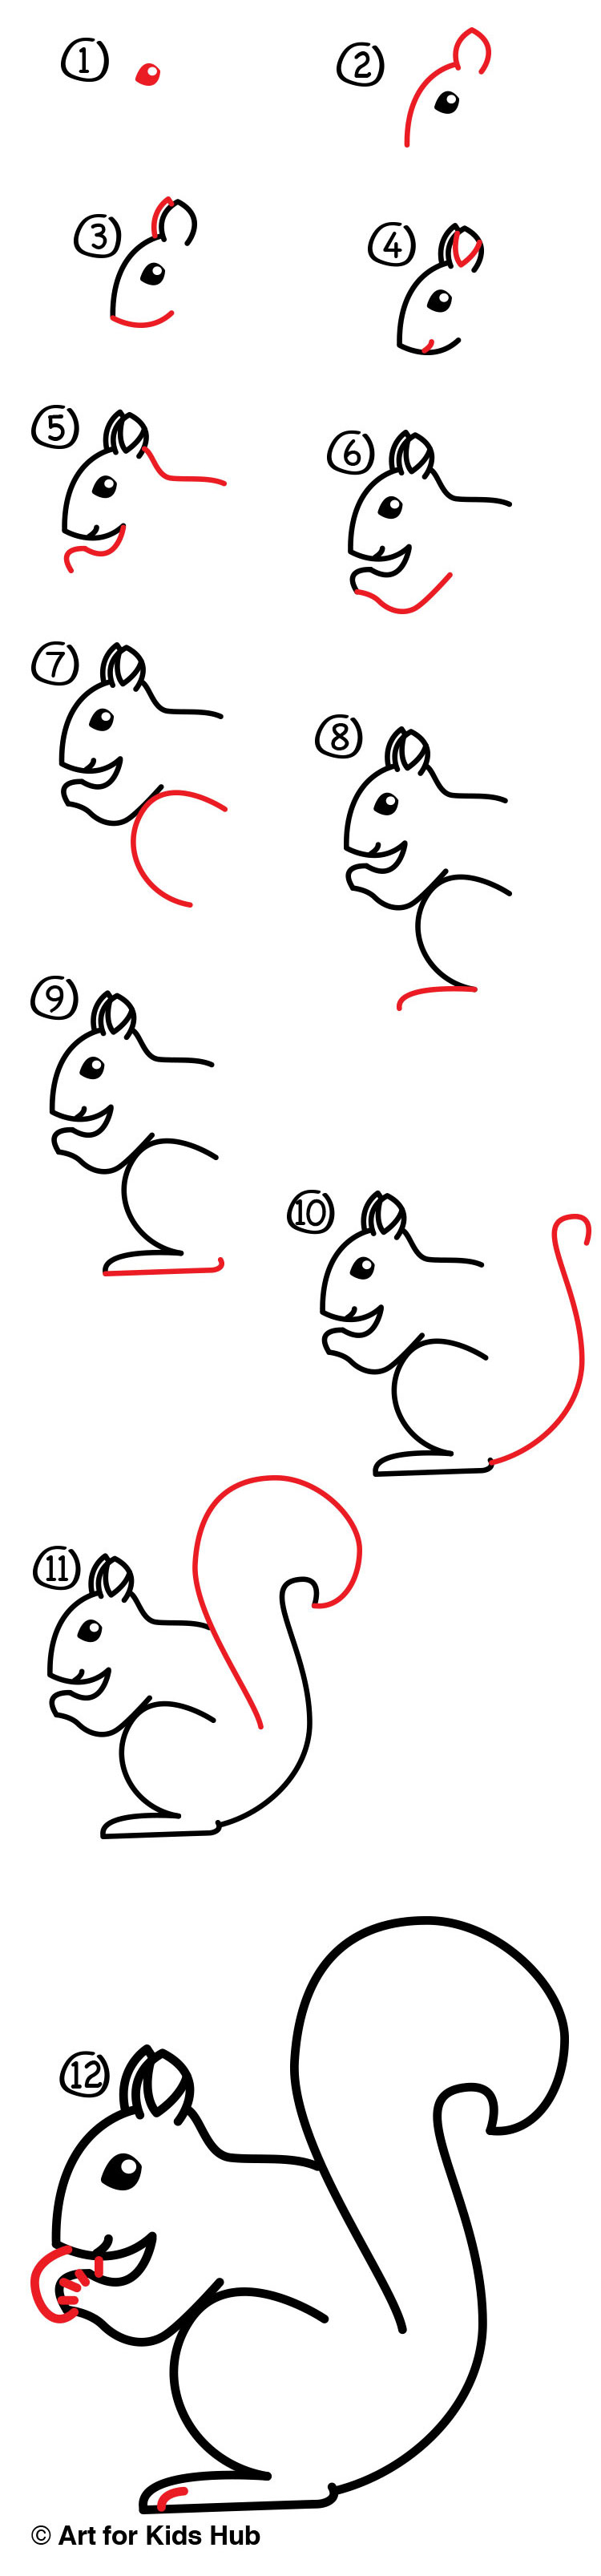 How to draw a squirrel 54